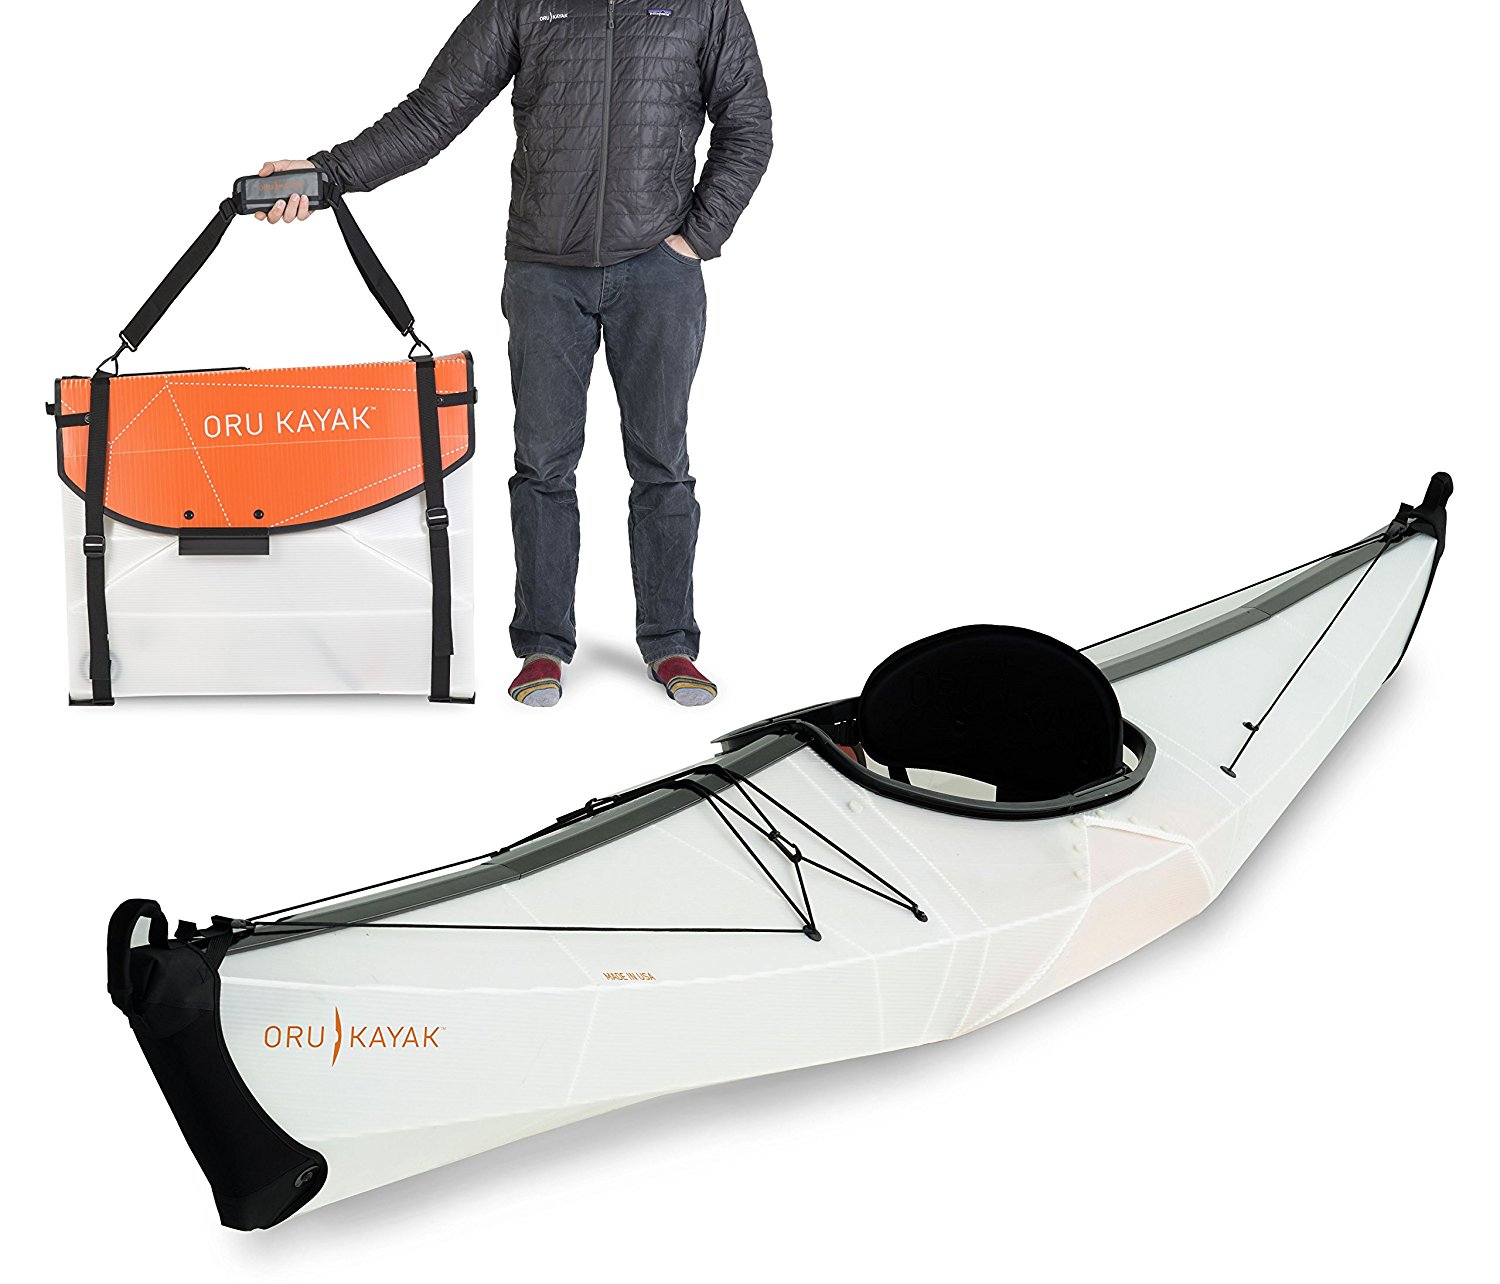 The Best Folding Kayaks of 2019 [Reviewed] – Top Models